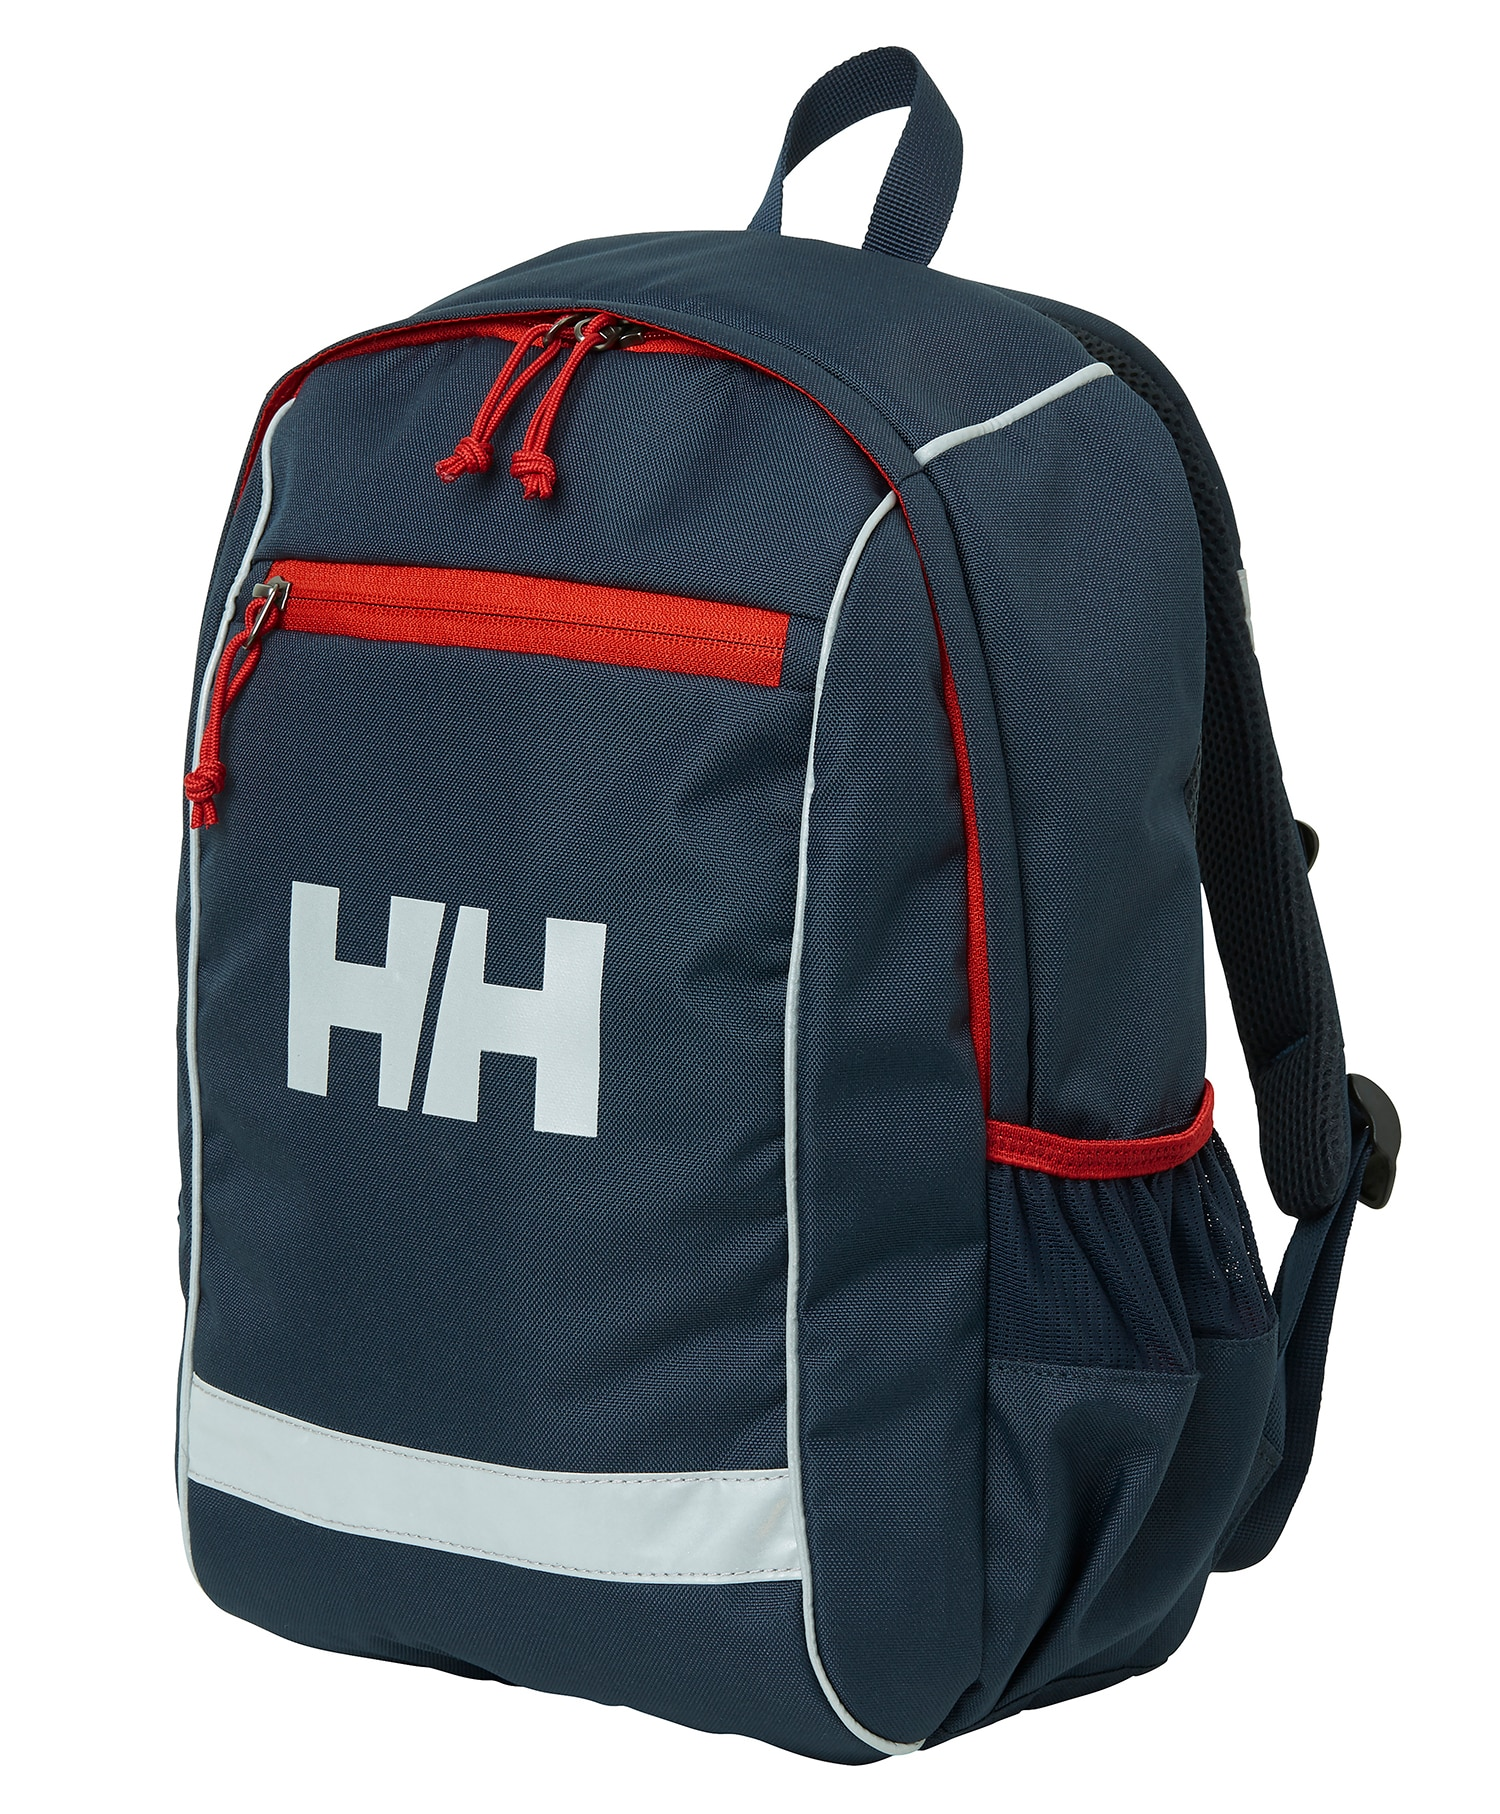 Helly Hansen Hopalong Jr Backpack